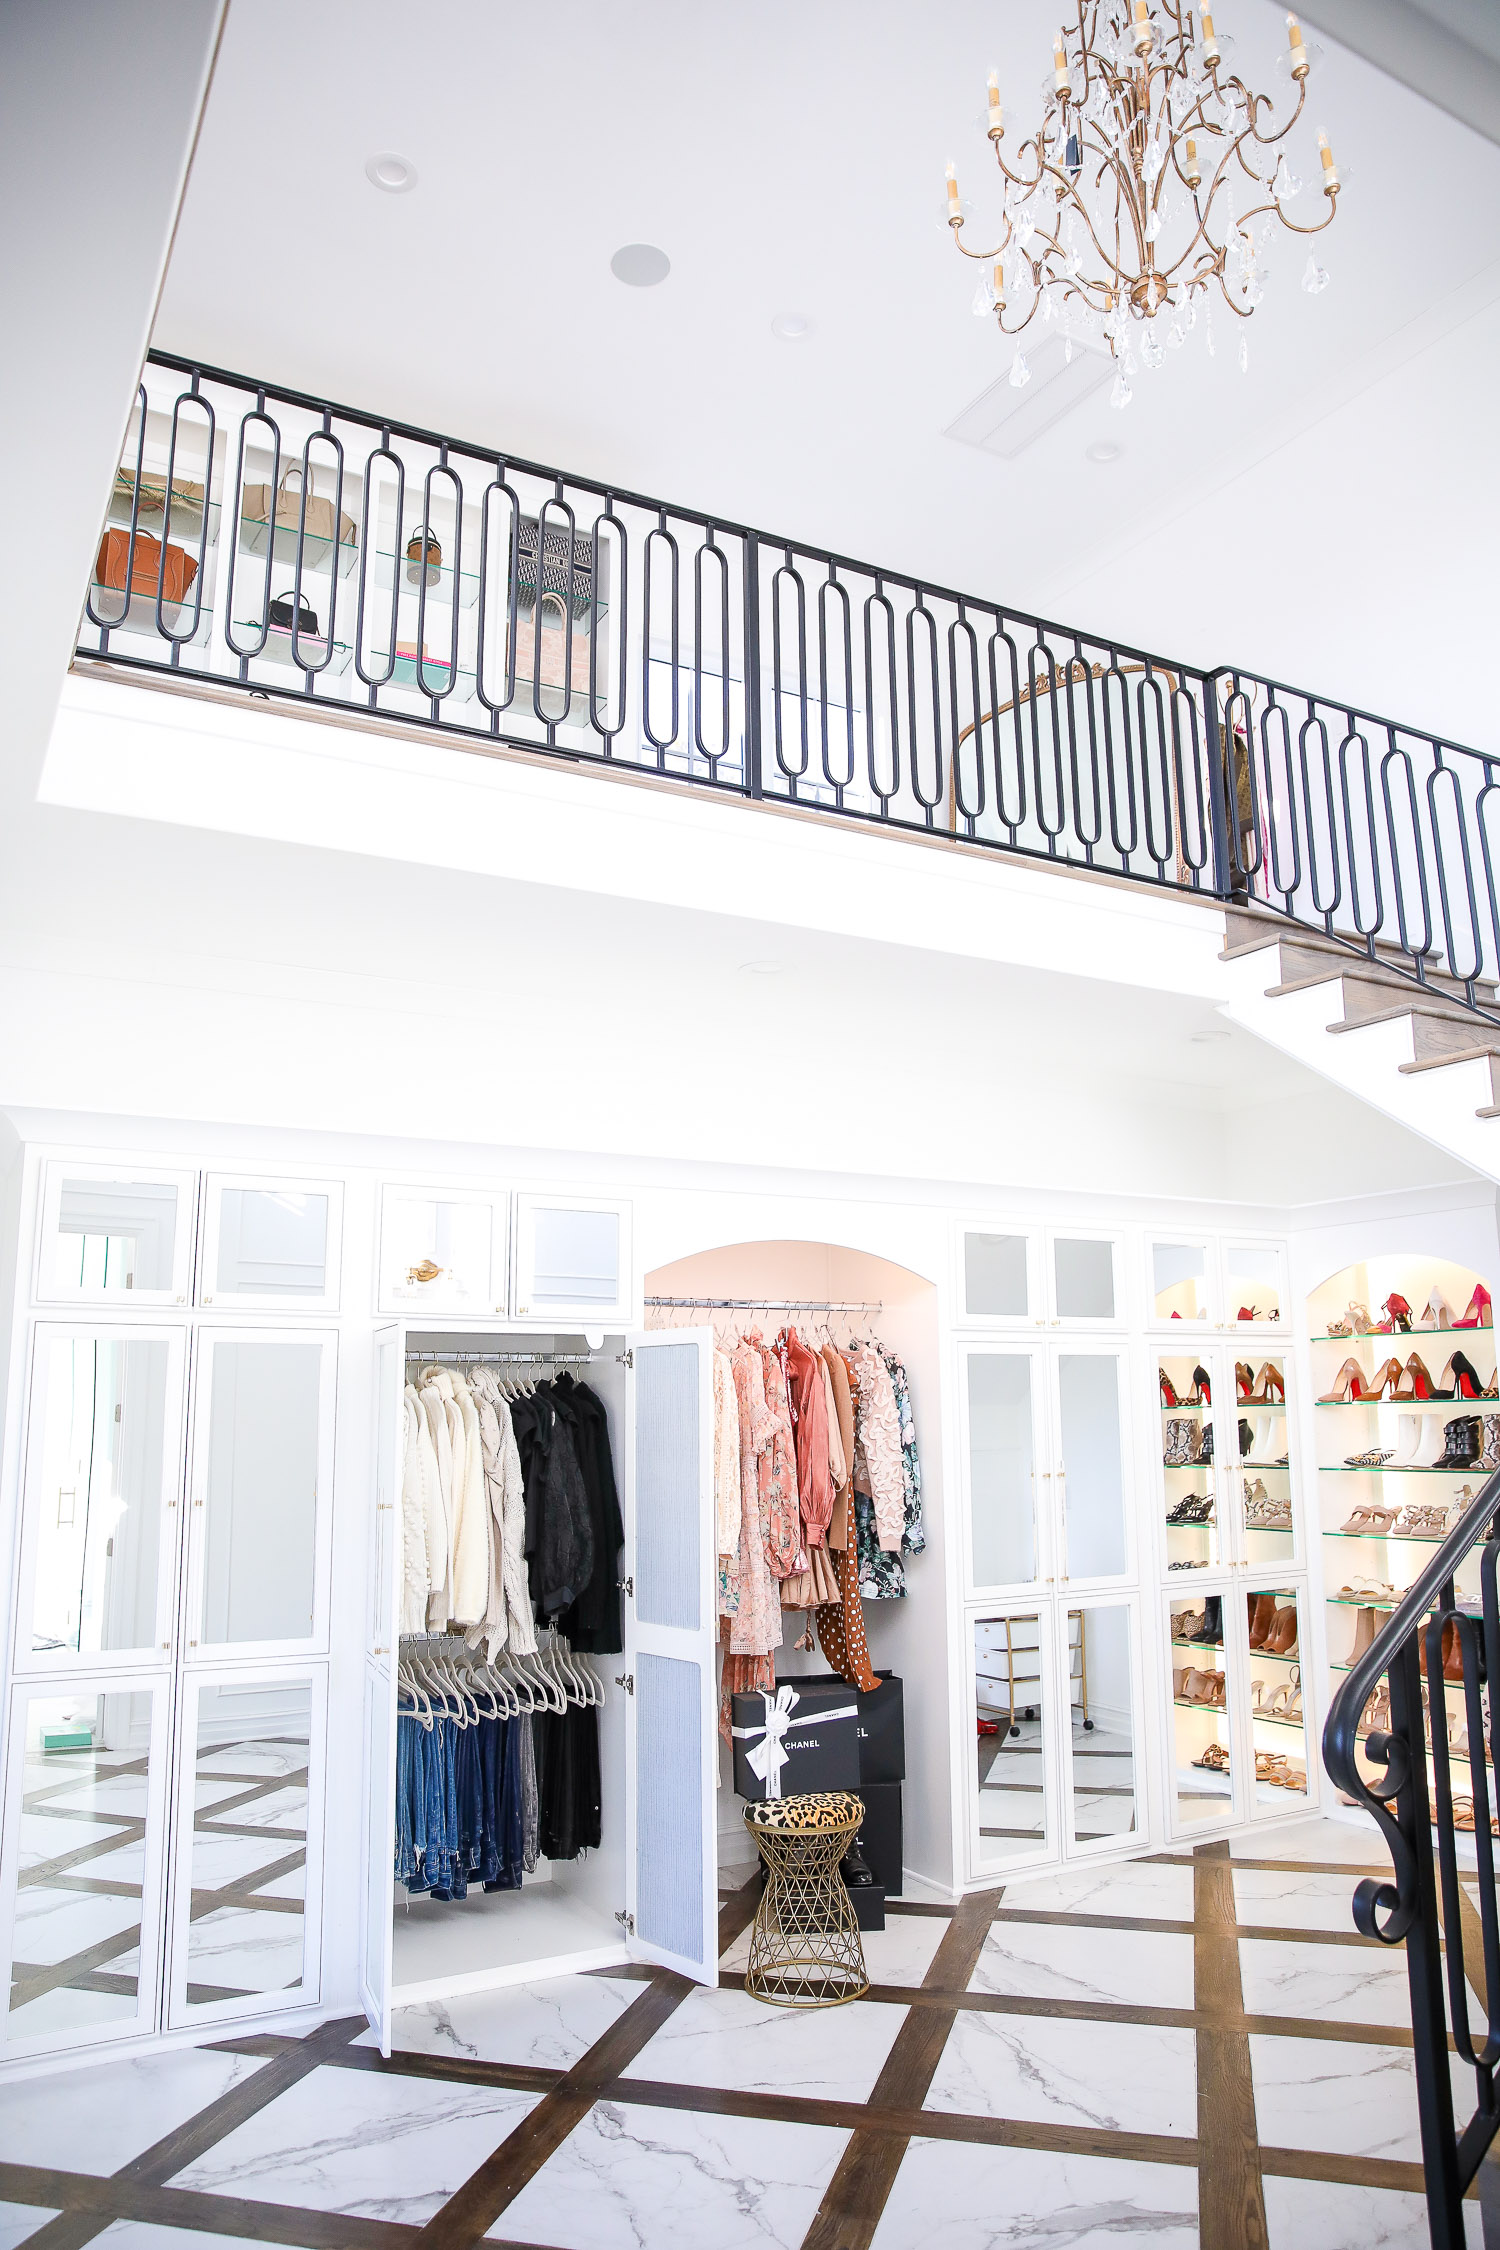 Top Picks by popular US life and style blog, The Sweetest Thing: image of a two story closet with marble and wood flooring, shoe display, full length mirrors, designer clothing and purses hanging from a clothing rack, grand stair case with a black metal railing, gold and crystal chandelier, and a pink velvet ottoman.